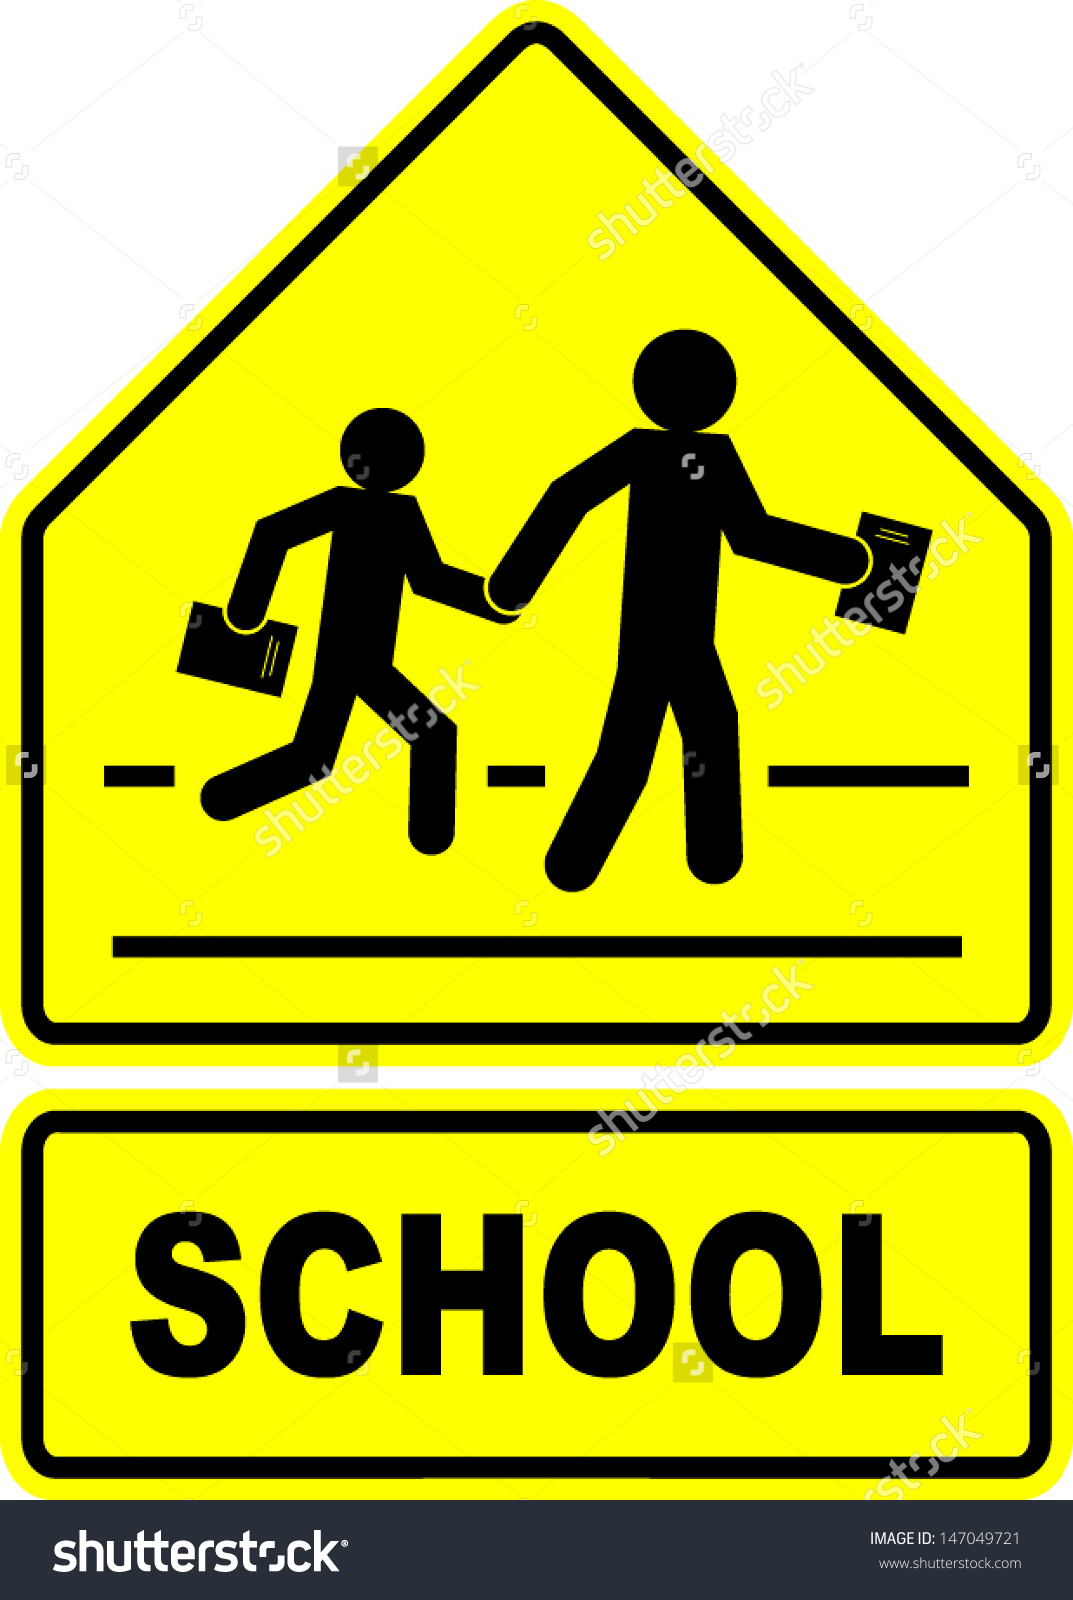 Clipart Signs Student Crossing.